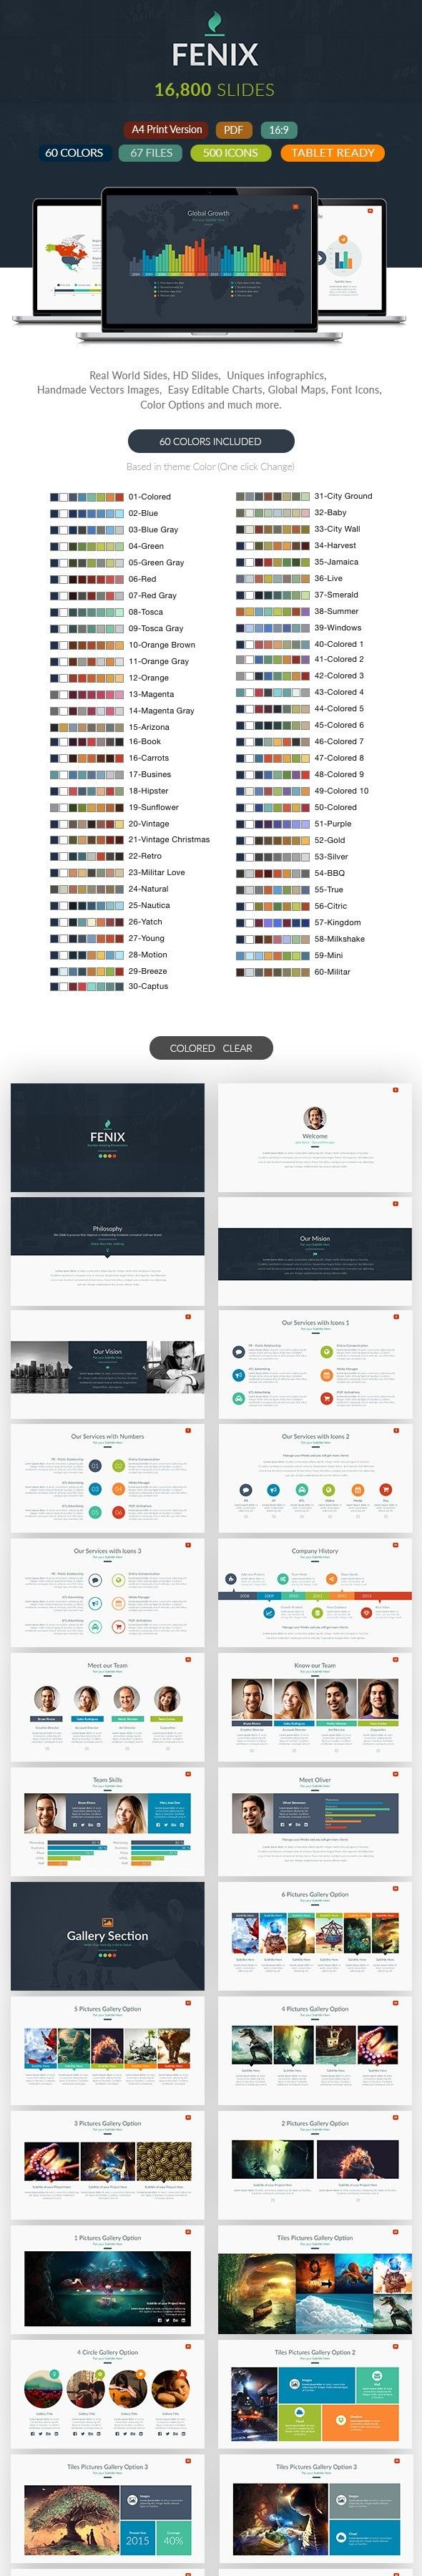 advertising campaign pitch brand chart infographics font awesome